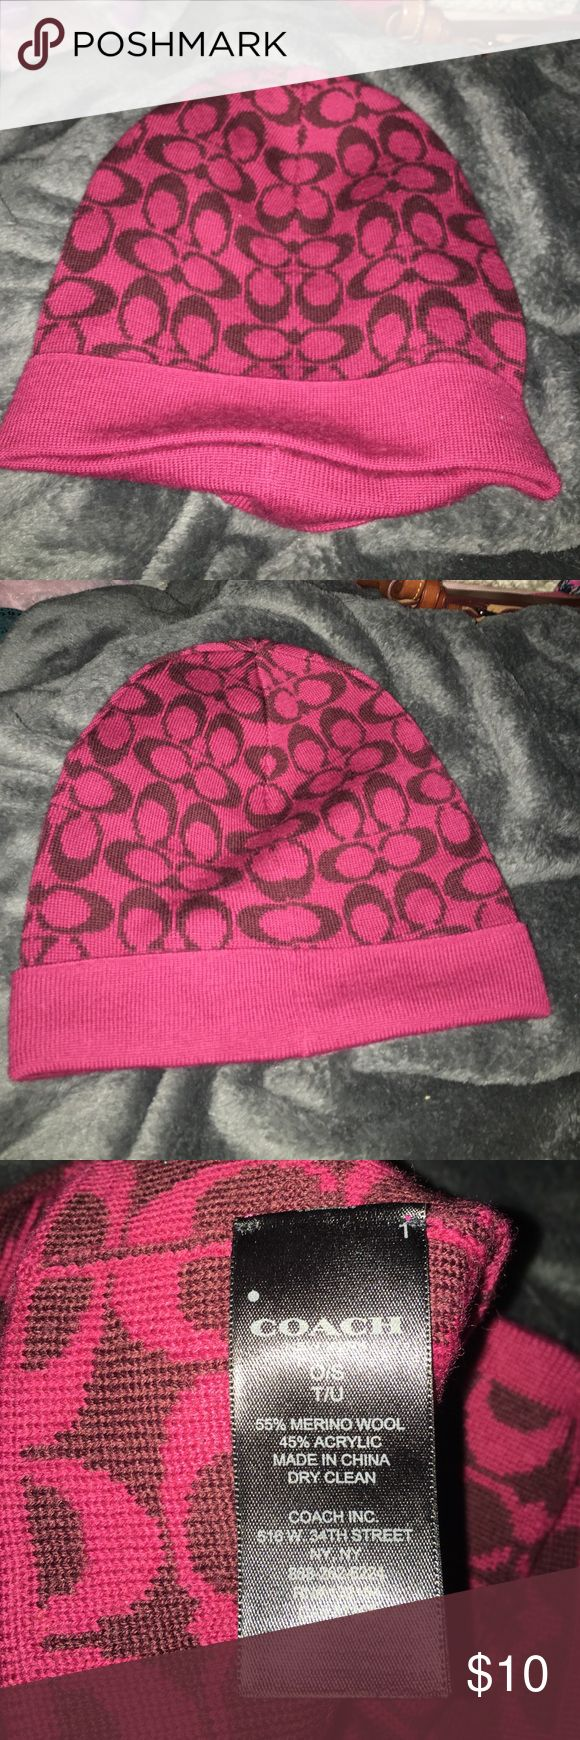 Coach hat Never worn pink beanie Coach Accessories Hats